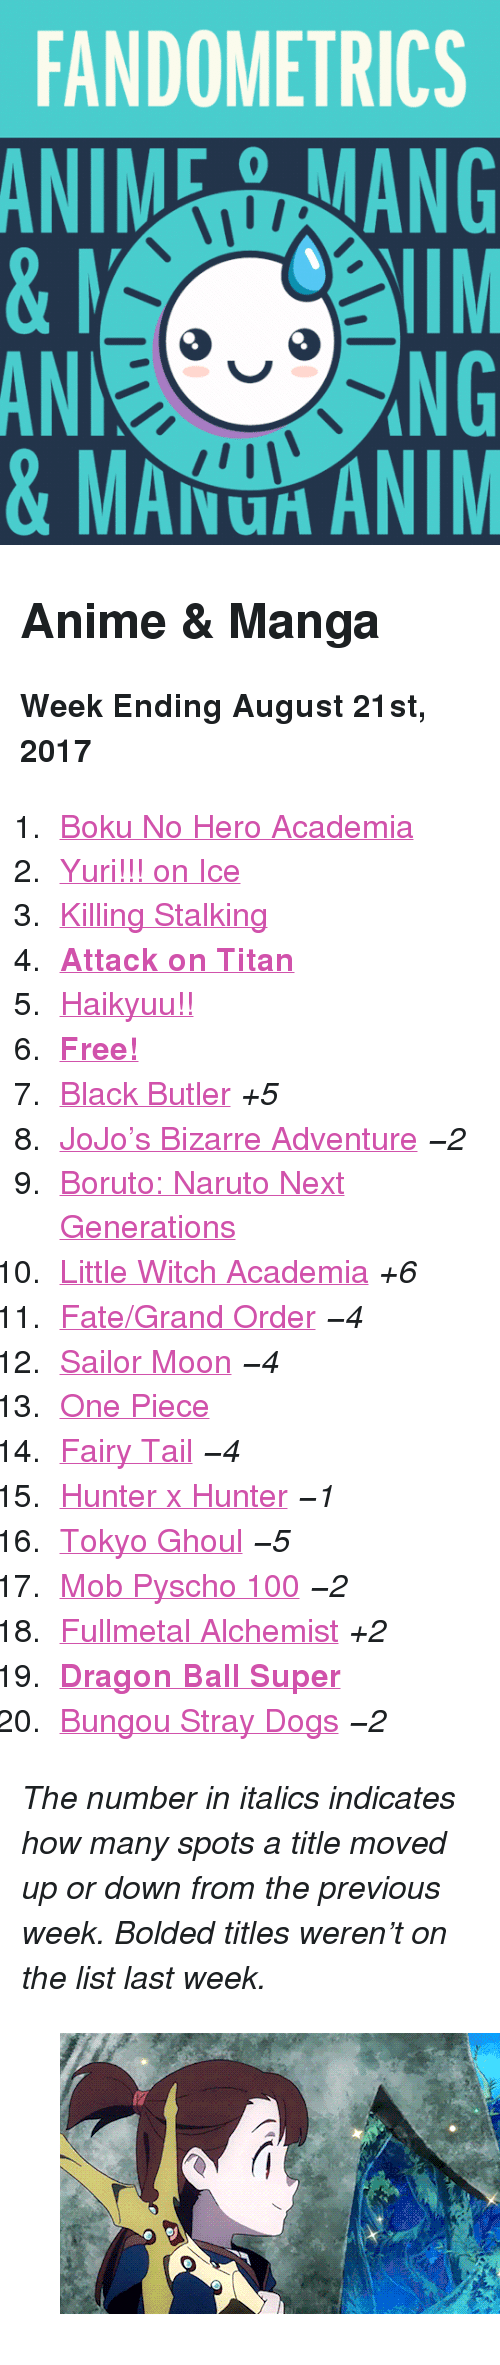 """Anaconda, Anime, and Dogs: FANDOMETRICS  ANIEANG  AN  0  NG  & MAU ANIM <h2>Anime &amp; Manga</h2><p><b>Week Ending August 21st, 2017</b></p><ol><li><a href=""""http://tumblr.co/61388xBGm"""">Boku No Hero Academia</a></li><li><a href=""""http://tumblr.co/61398xBGW"""">Yuri!!! on Ice</a></li><li><a href=""""http://tumblr.co/61318xBGU"""">Killing Stalking</a></li><li><a href=""""http://tumblr.co/61338xBGS""""><b>Attack on Titan</b></a></li><li><a href=""""http://tumblr.co/61348xBGs!!"""">Haikyuu!!</a></li><li><a href=""""http://tumblr.co/61398xBGx!""""><b>Free!</b></a></li><li><a href=""""http://tumblr.co/61308xBGI"""">Black Butler</a><i>+5</i></li><li><a href=""""http://tumblr.co/61338xBGF"""">JoJo&rsquo;s Bizarre Adventure</a><i>−2</i></li><li><a href=""""http://tumblr.co/61358xBGN"""">Boruto: Naruto Next Generations</a></li><li><a href=""""http://tumblr.co/61368xBG4"""">Little Witch Academia</a><i>+6</i></li><li><a href=""""http://tumblr.co/61378xBGf"""">Fate/Grand Order</a><i>−4</i></li><li><a href=""""http://tumblr.co/61388xBGA"""">Sailor Moon</a><i>−4</i></li><li><a href=""""http://tumblr.co/61398xBG7"""">One Piece</a></li><li><a href=""""http://tumblr.co/61308xBGC"""">Fairy Tail</a><i>−4</i></li><li><a href=""""http://tumblr.co/61318xBGh"""">Hunter x Hunter</a><i>−1</i></li><li><a href=""""http://tumblr.co/61328xBH6"""">Tokyo Ghoul</a><i>−5</i></li><li><a href=""""http://tumblr.co/61338xBHB"""">Mob Pyscho 100</a><i>−2</i></li><li><a href=""""http://tumblr.co/61348xBH8"""">Fullmetal Alchemist</a><i>+2</i></li><li><a href=""""http://tumblr.co/61358xBHD""""><b>Dragon Ball Super</b></a></li><li><a href=""""http://tumblr.co/61378xBH1"""">Bungou Stray Dogs</a><i>−2</i></li></ol><p><i>The number in italics indicates how many spots a title moved up or down from the previous week. Bolded titles weren't on the list last week.</i></p><figure class=""""tmblr-full"""" data-orig-height=""""281"""" data-orig-width=""""500"""" data-tumblr-attribution=""""mimi-pearlbaton:QzPcCSANtws8wS2CUs0HCA:ZVgZao2MsQBpH""""><img src=""""https://78.media.tumblr.com/9d8d5e1fe70dcf8620d4e6a63428d179/tumblr_orra0mMSdn1tr842yo2_r2_500.gif"""""""